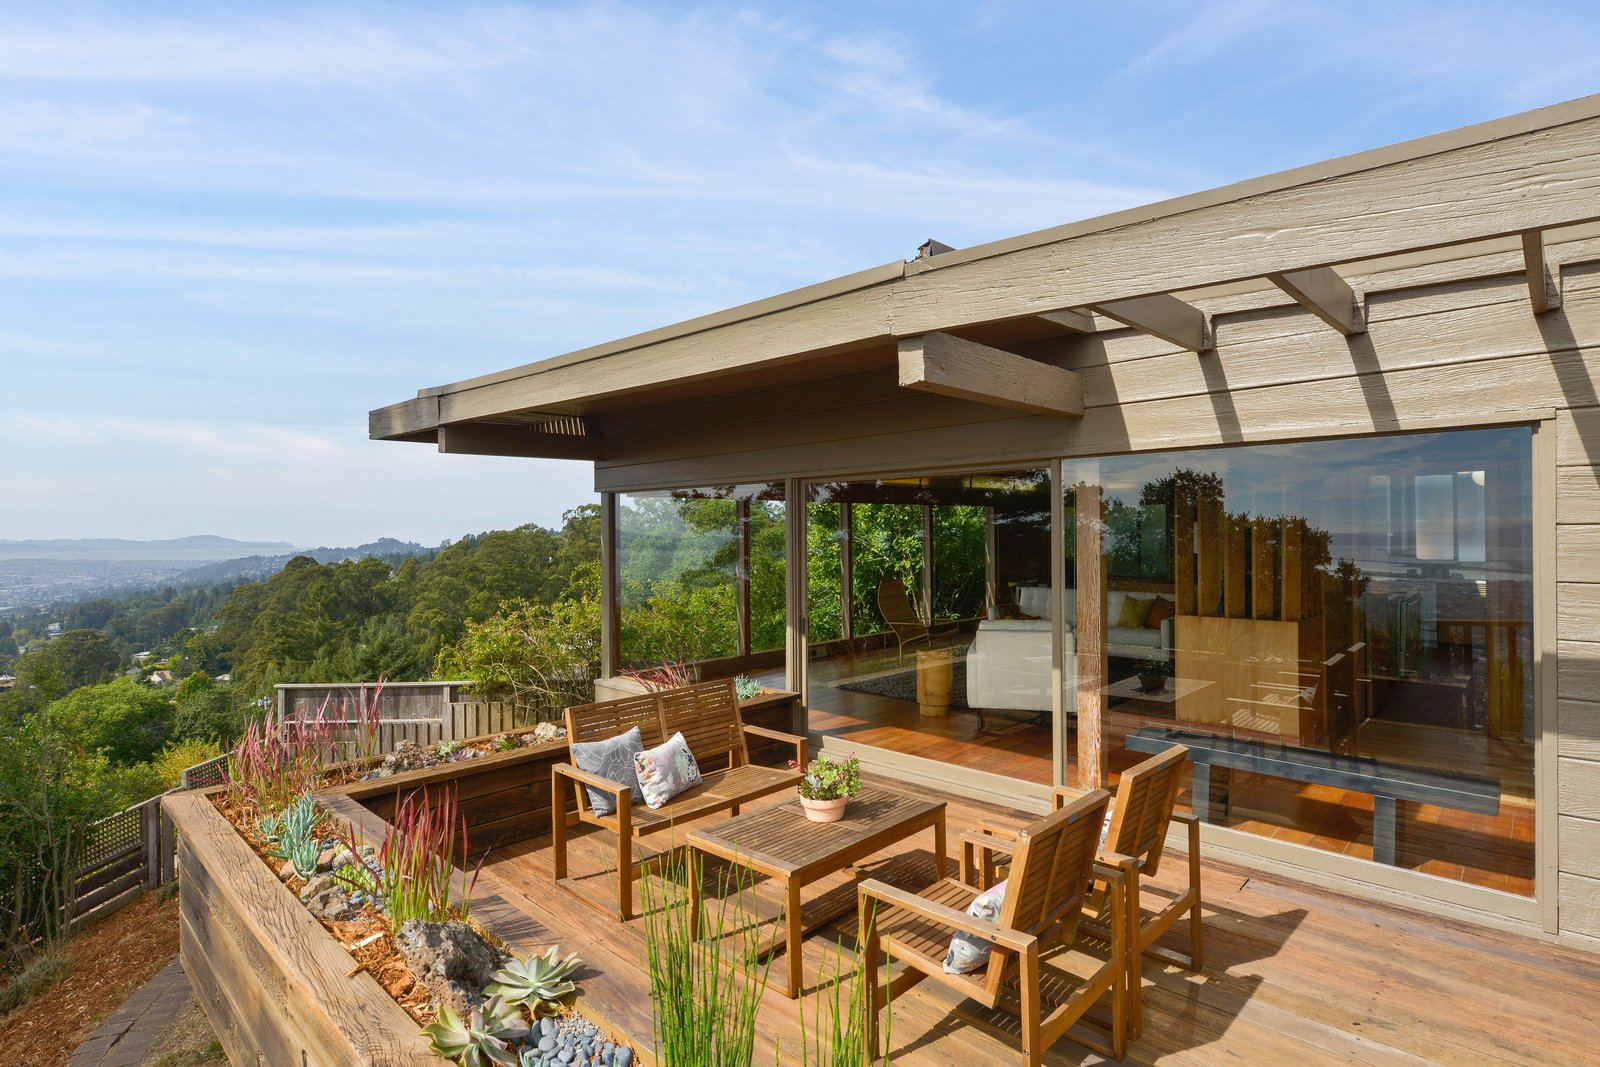 Outdoor, Wood, Planters, Small, Back Yard, Gardens, and Trees This is the deck off the living room.  Best Outdoor Wood Gardens Photos from A Berkeley Midcentury With Jaw-Dropping Views Asks $945K